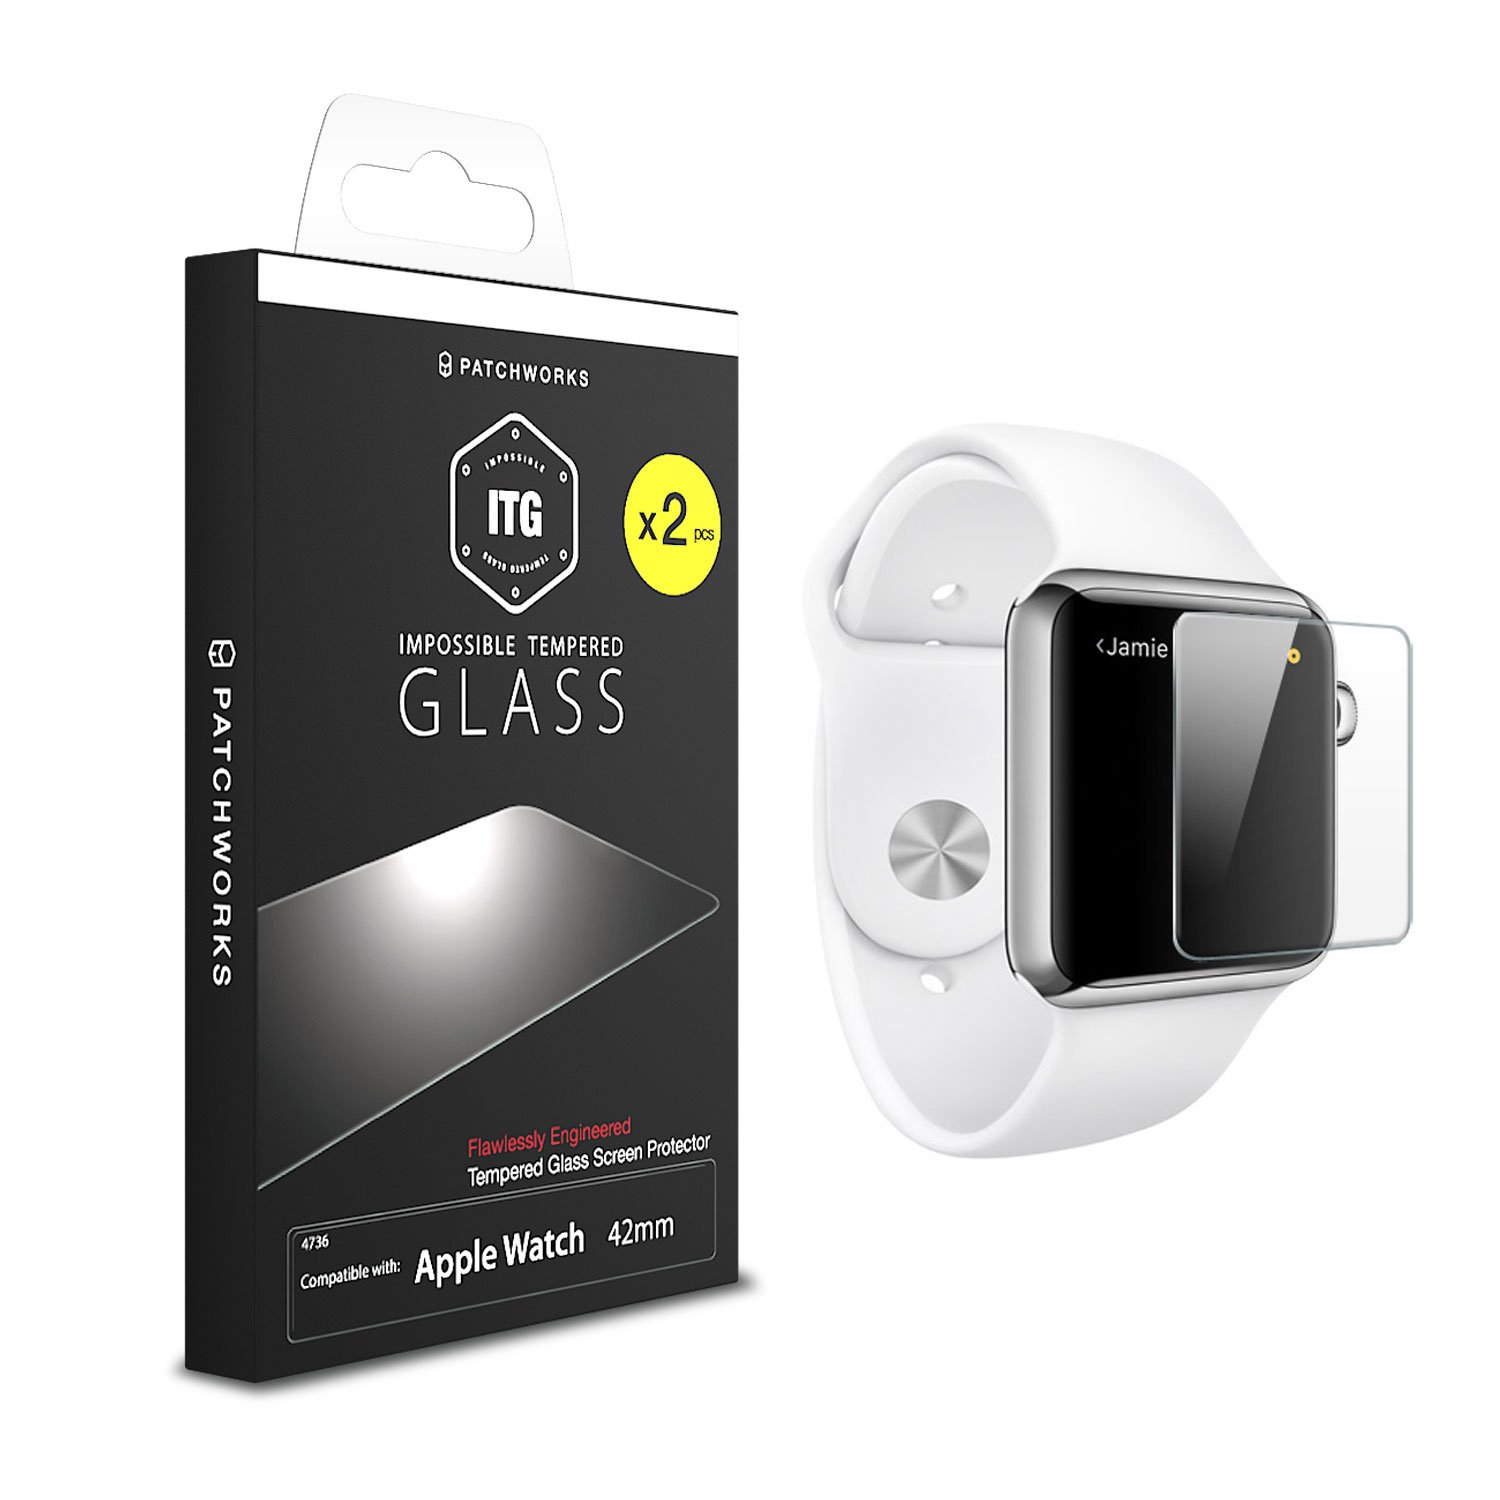 [2-Pack] Apple Watch 42mm (Series 1/Series 2/Series 3) Glass Screen Protector, Patchworks ITG PLUS 9H Oil Scratch Resistant Coated Tempered Glass Screen Protector [Only Covers the Flat Area]